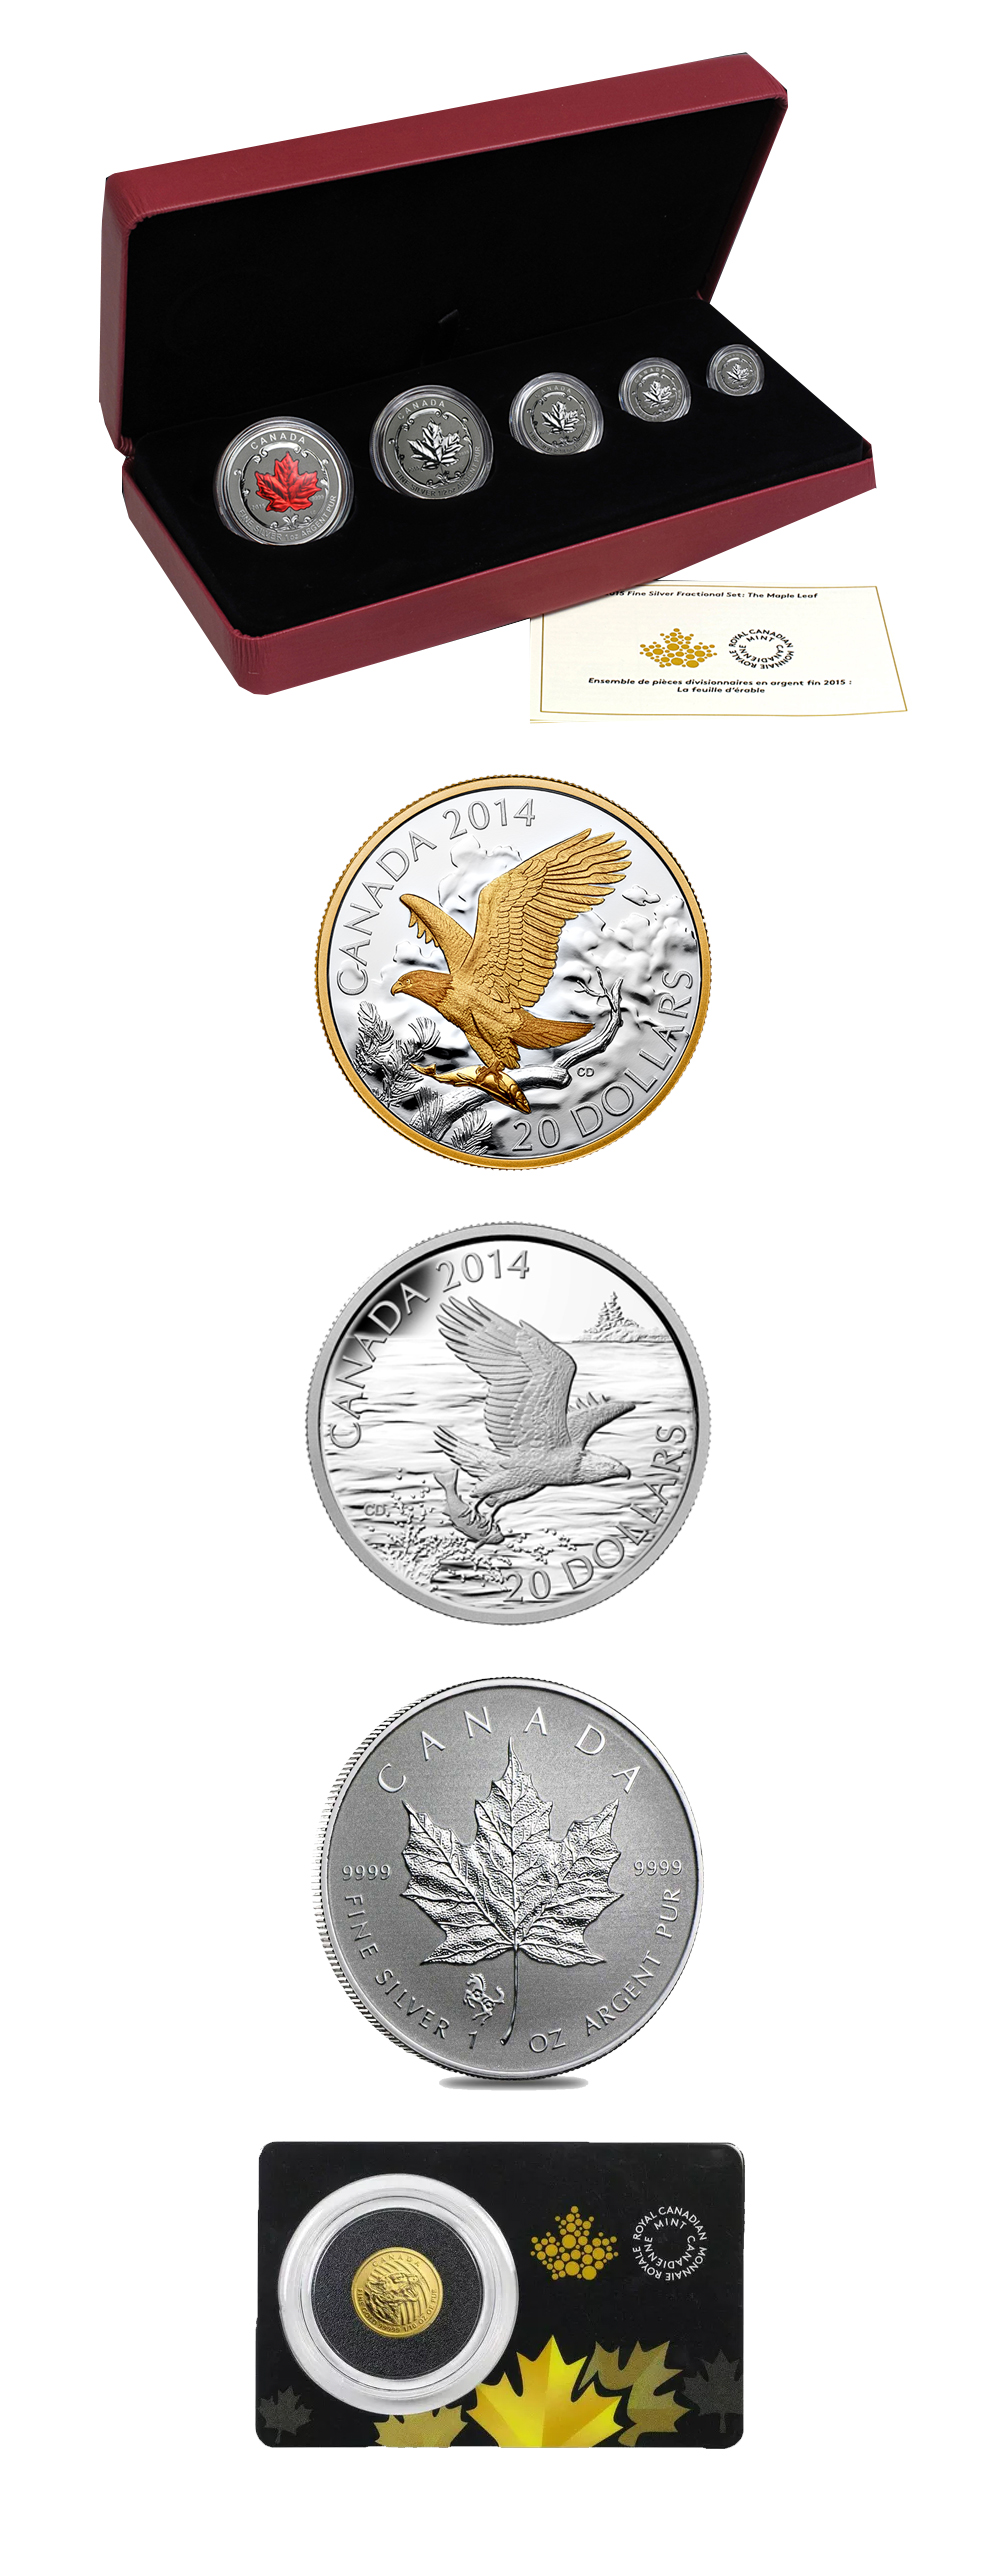 Money Metals Exchange Bullion Specials - Cheap Gold & Silver